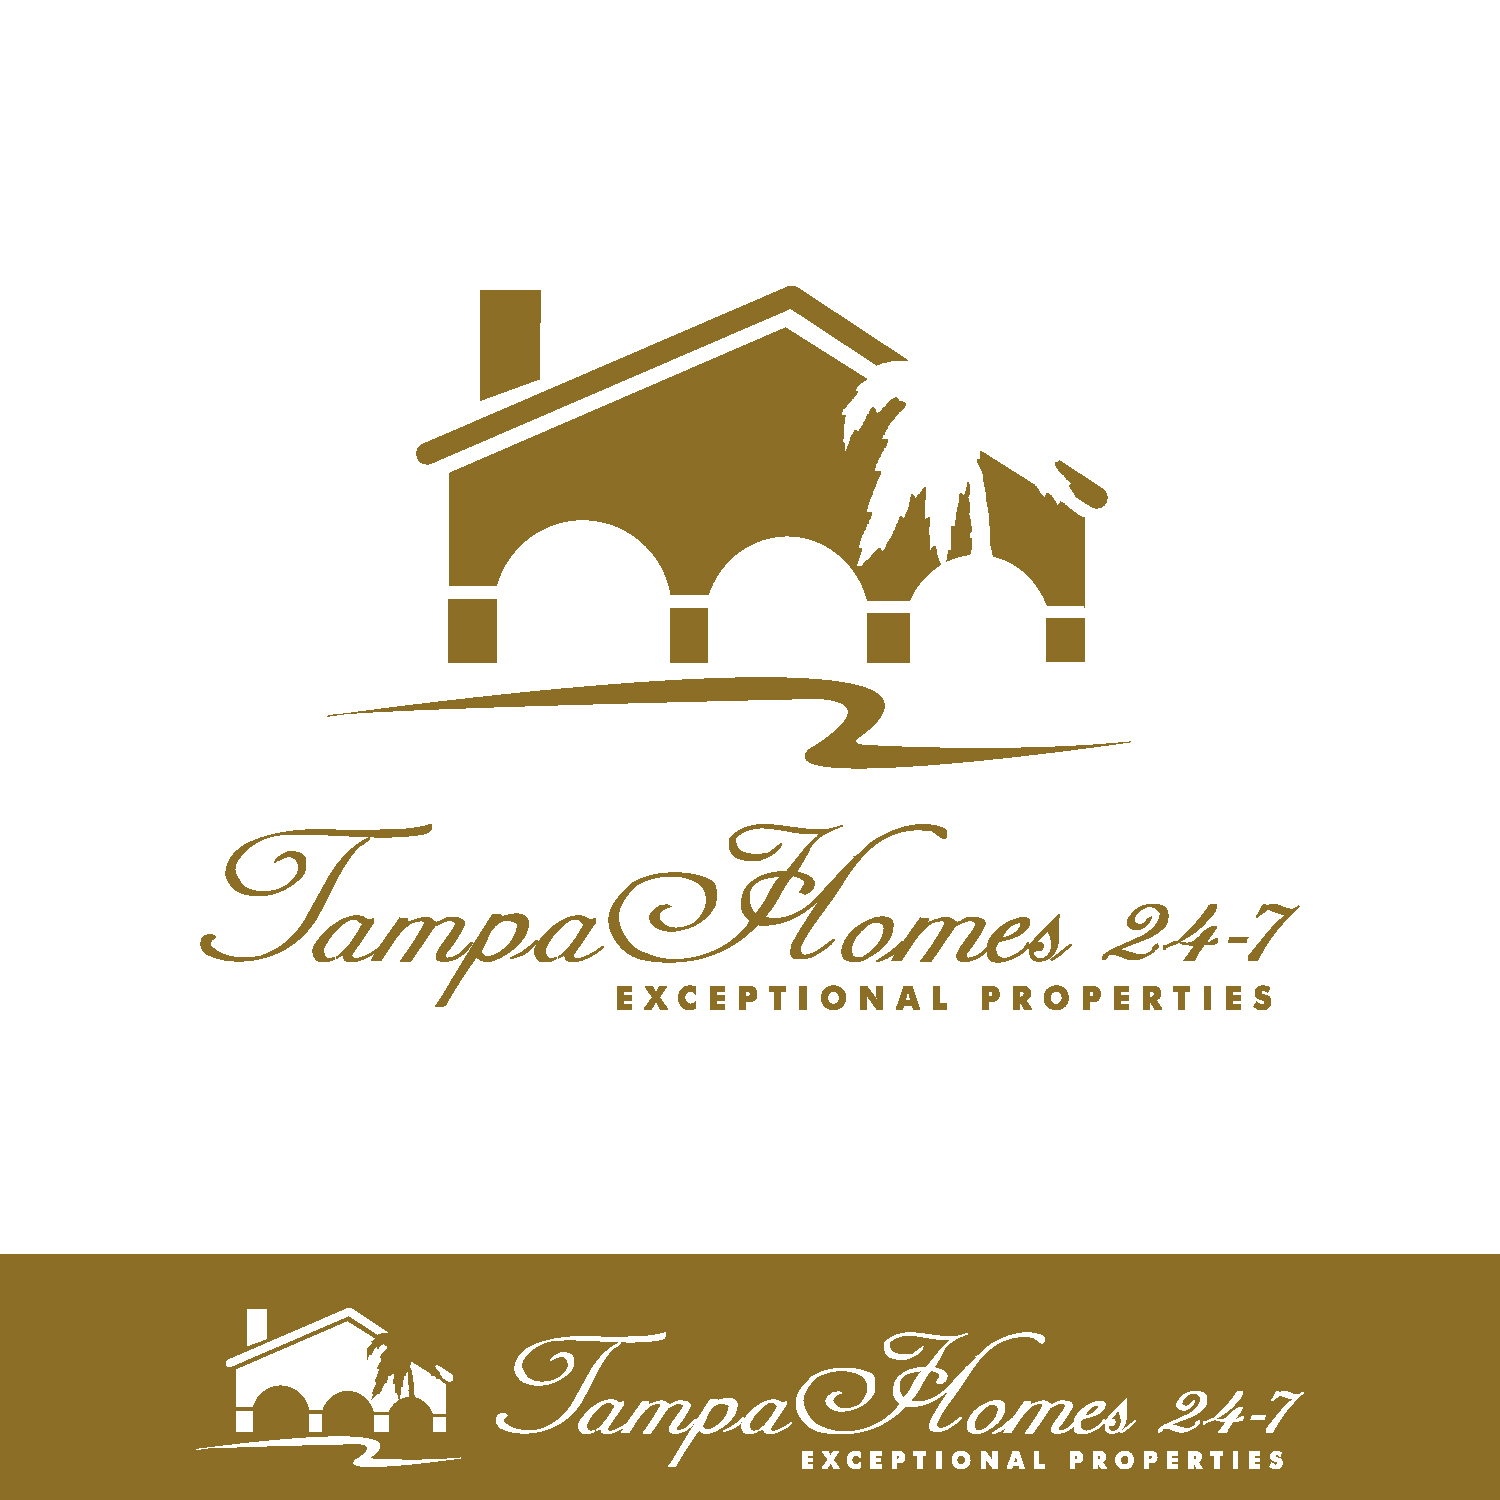 44 professional logo designs for tampa homes 24 7 a business in united states. Black Bedroom Furniture Sets. Home Design Ideas